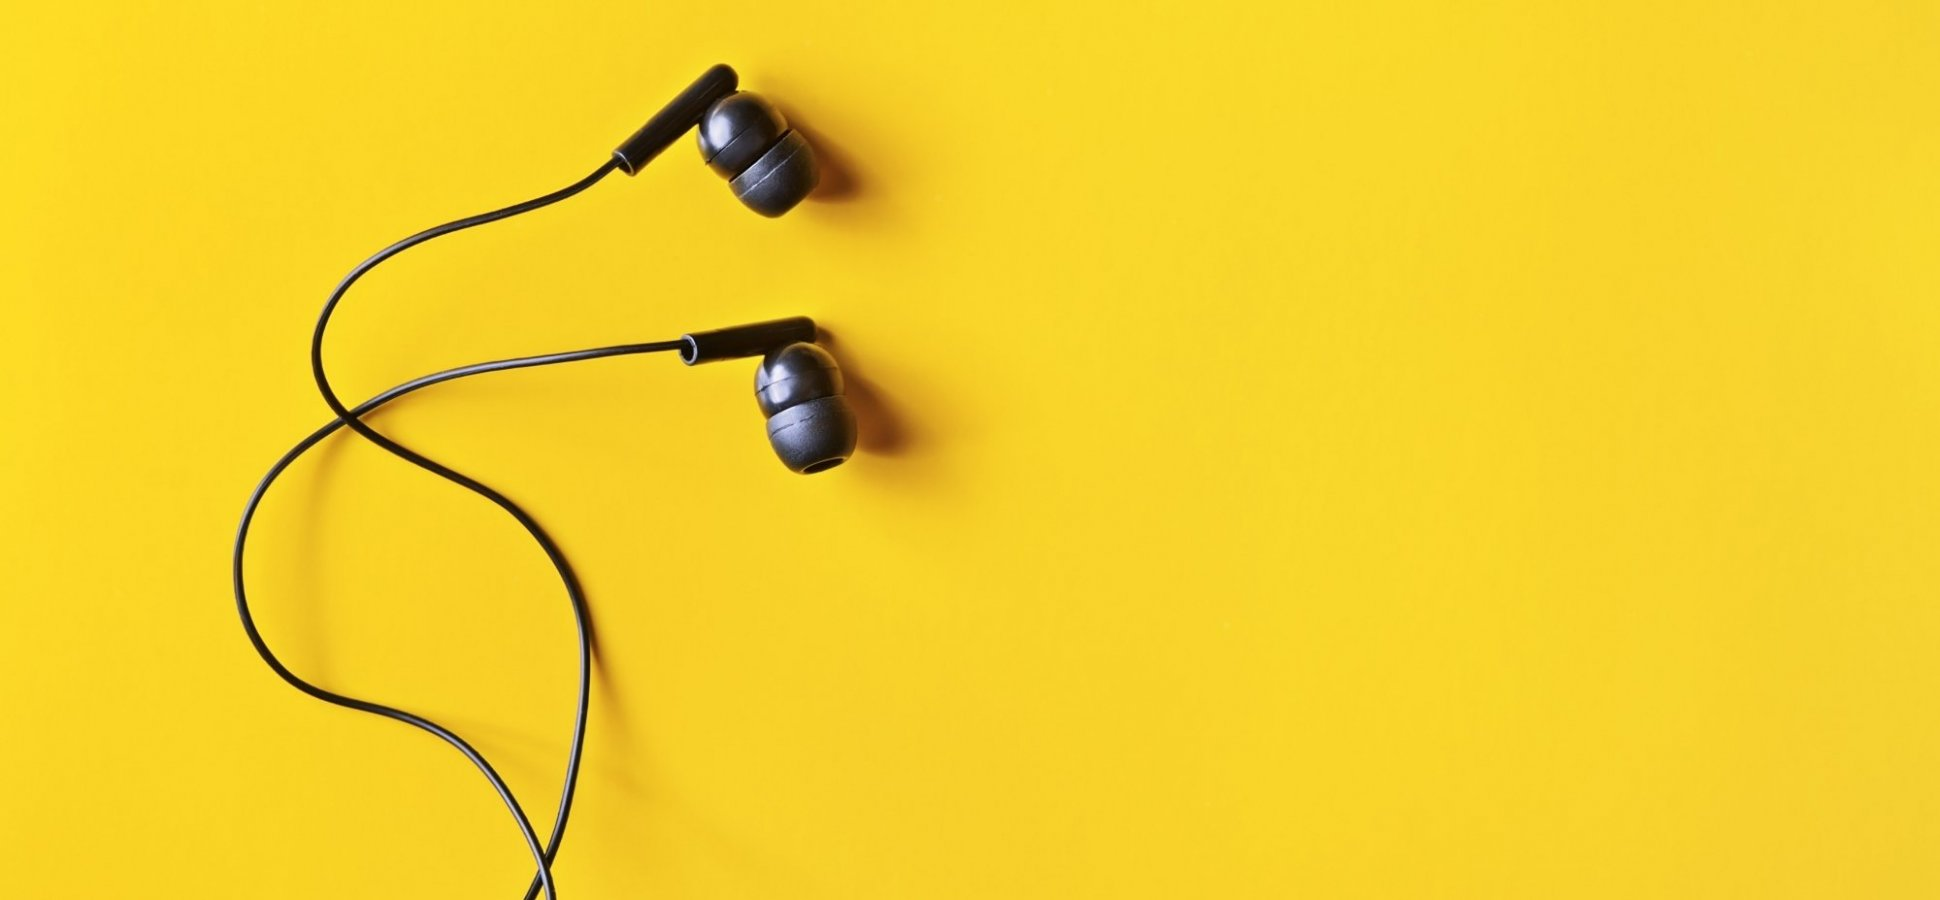 10 Podcasts That Will Change Your Business Life For The Better